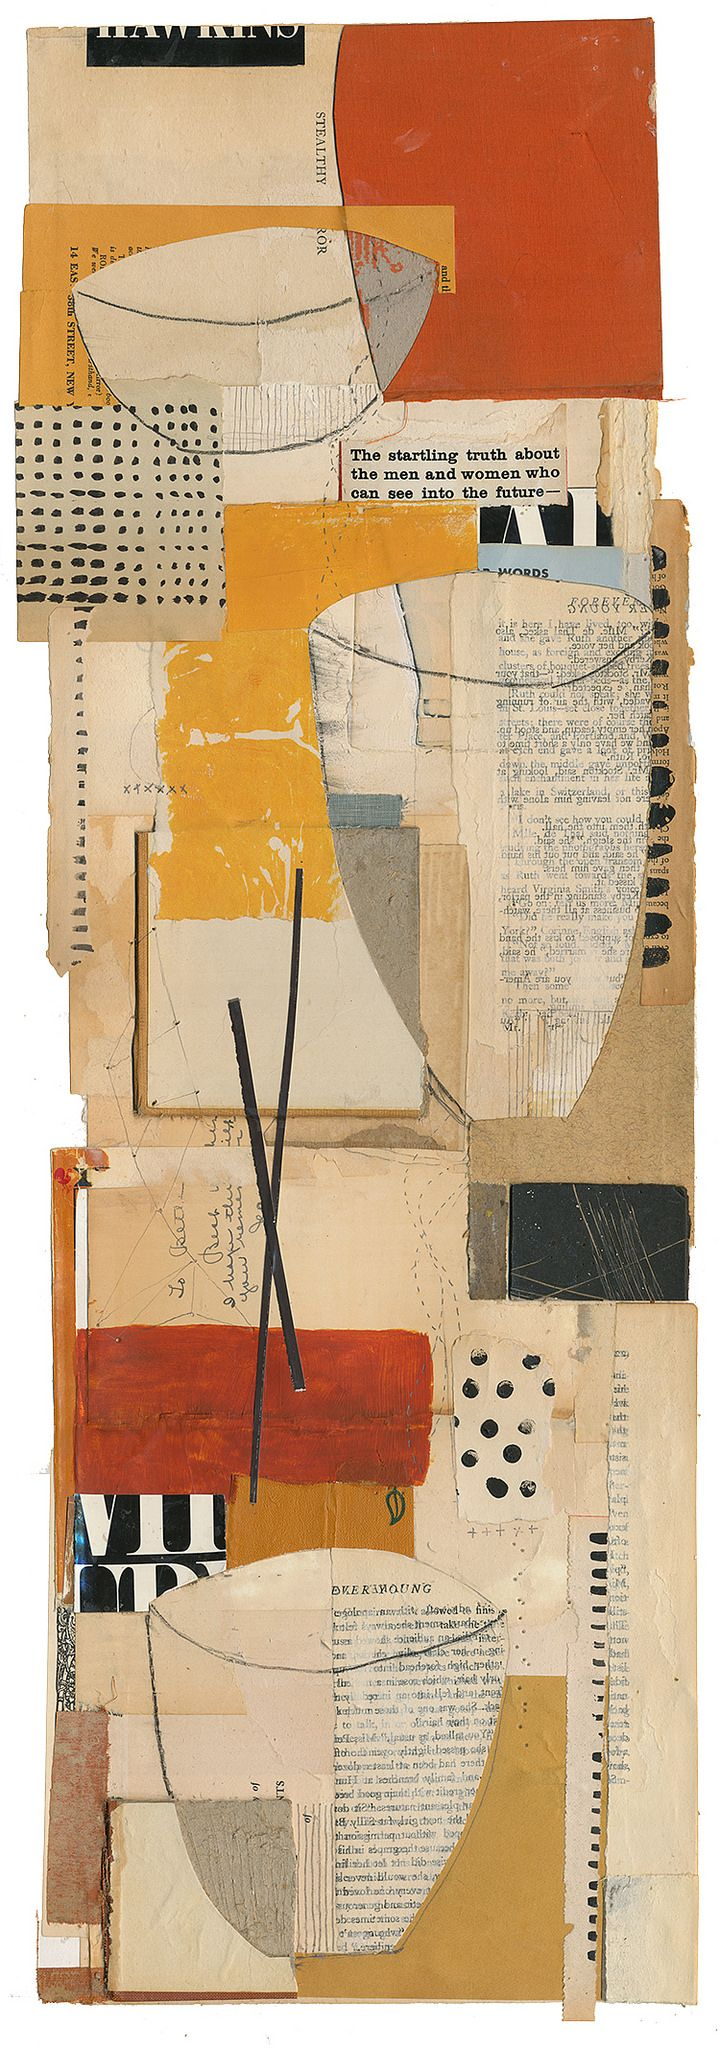 "Melinda Tidwell - ""150120: Vessels 11"", 28H x 10W"", book collage on paper"